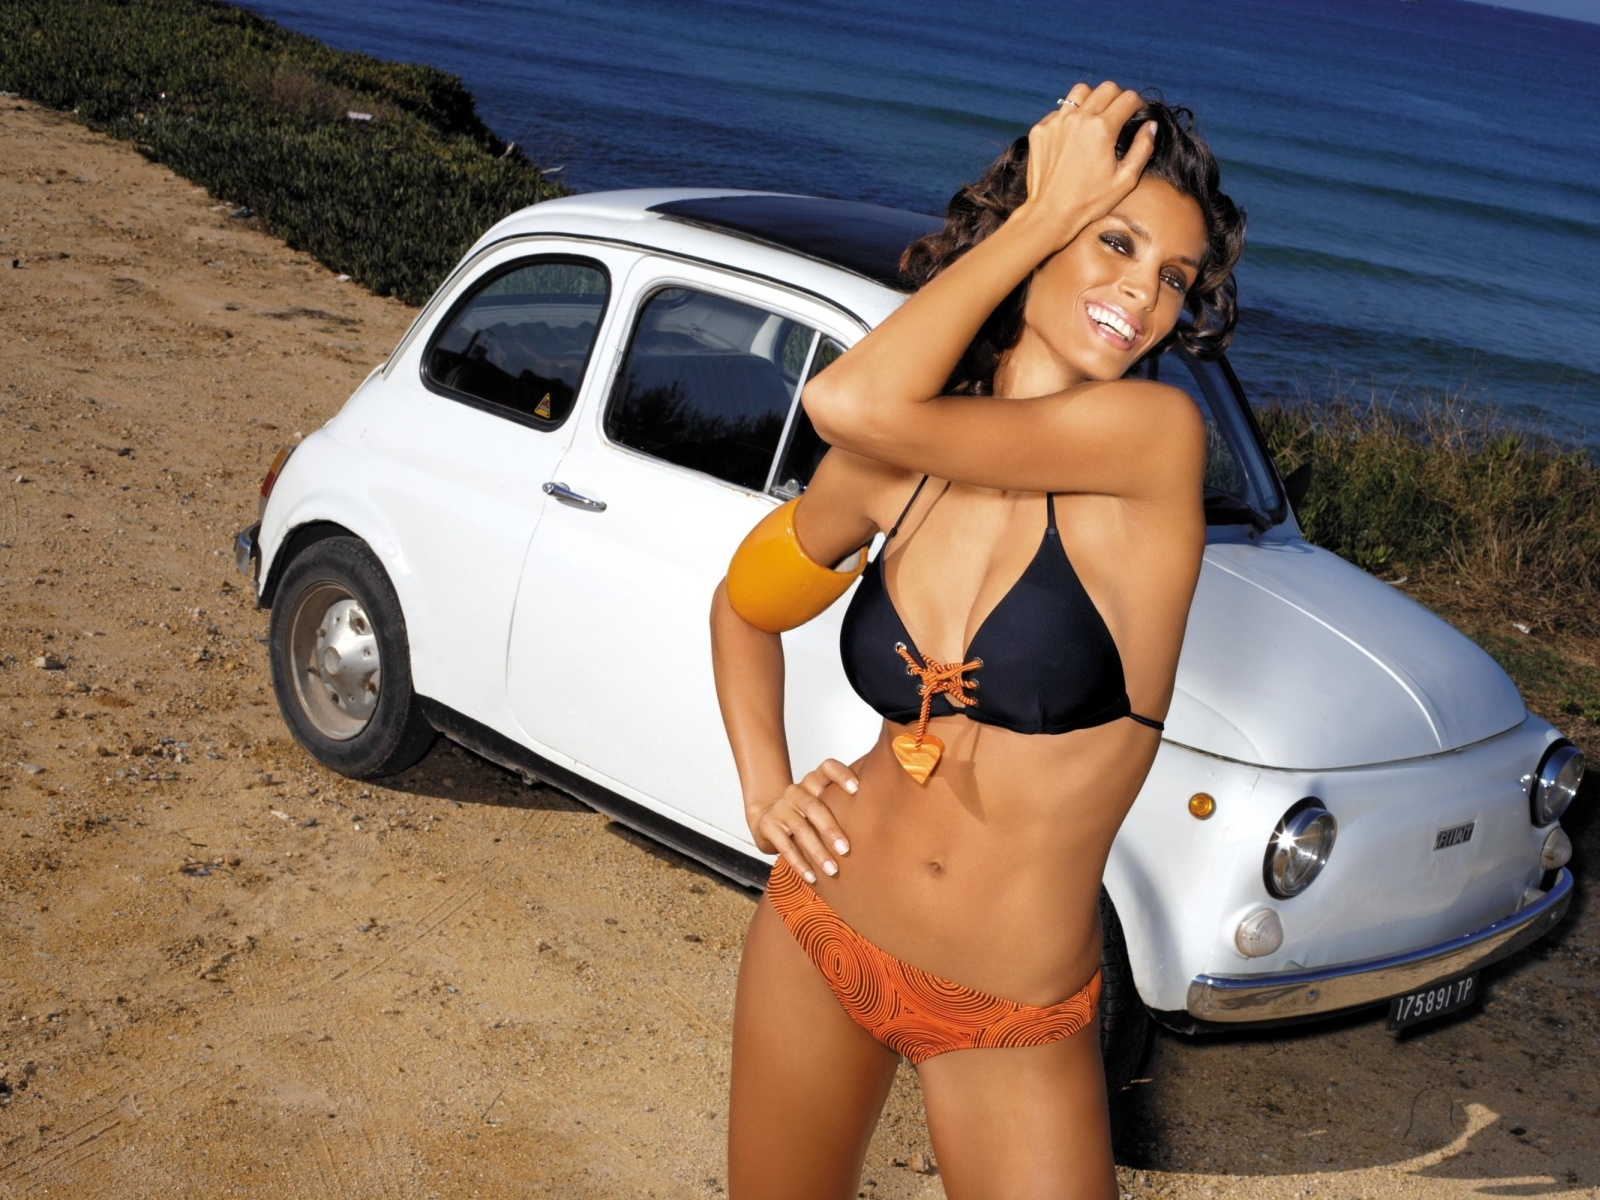 Cars and Hot girls hd